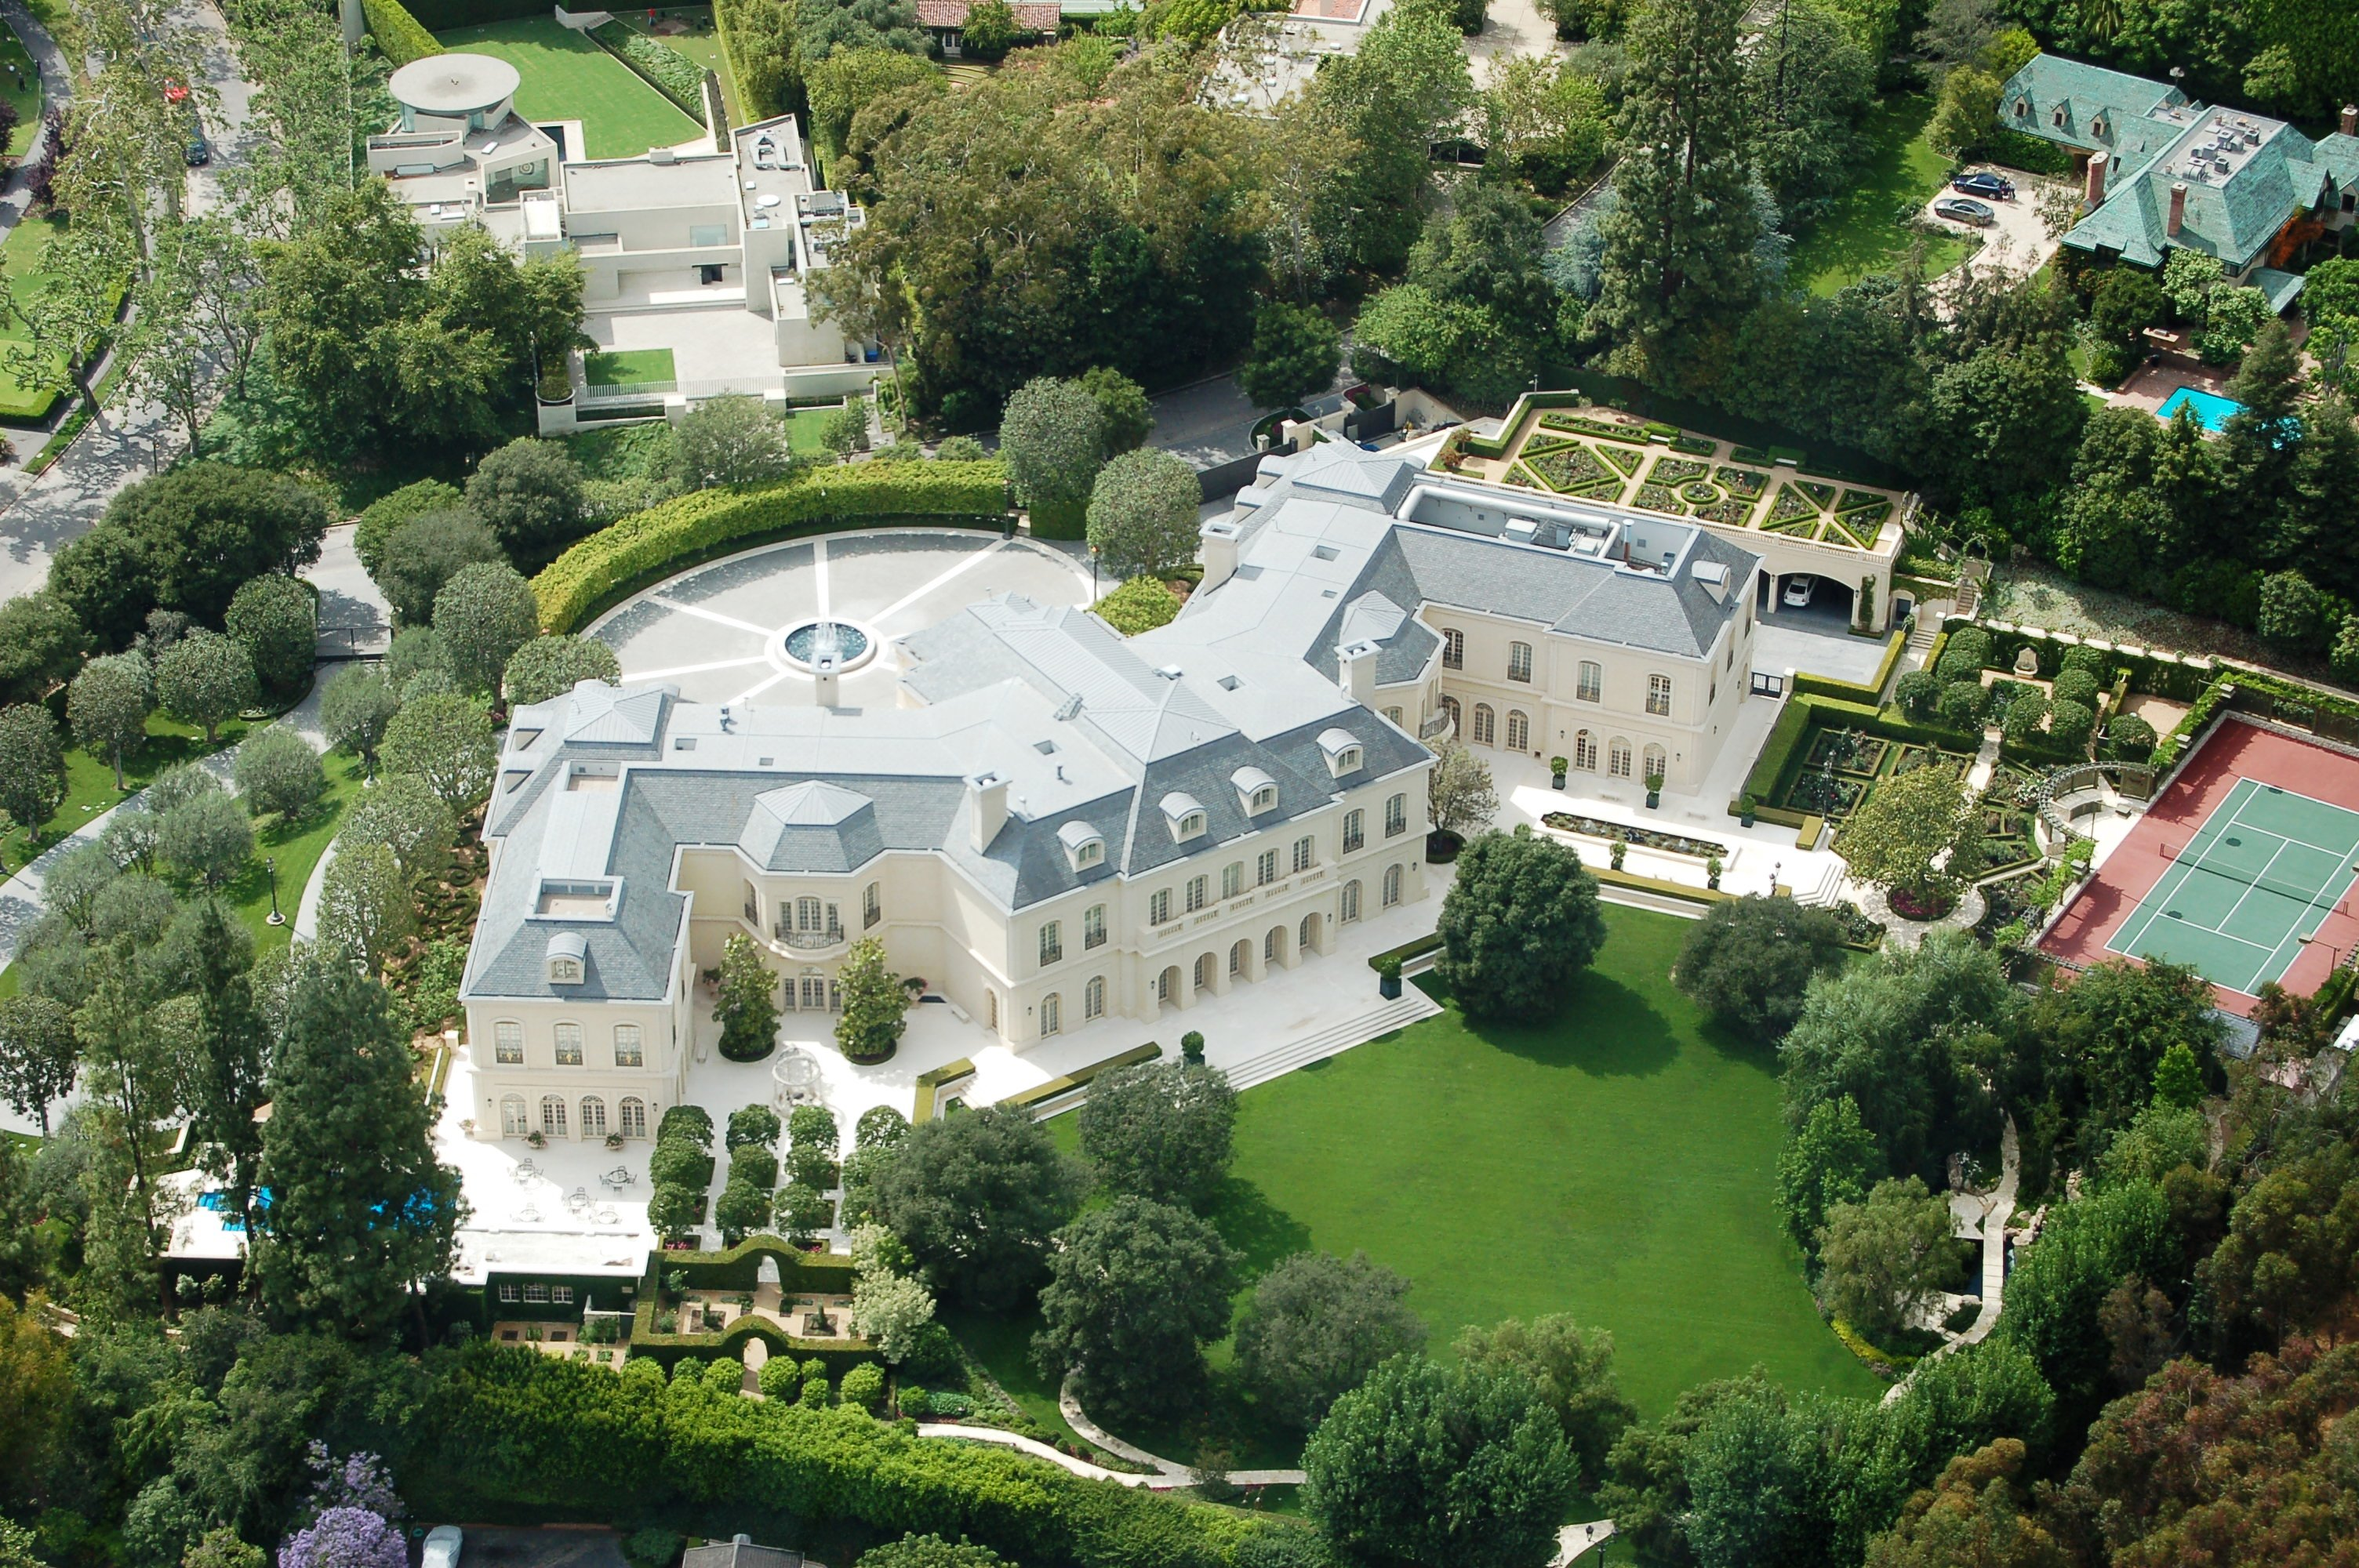 The manor is a mansion